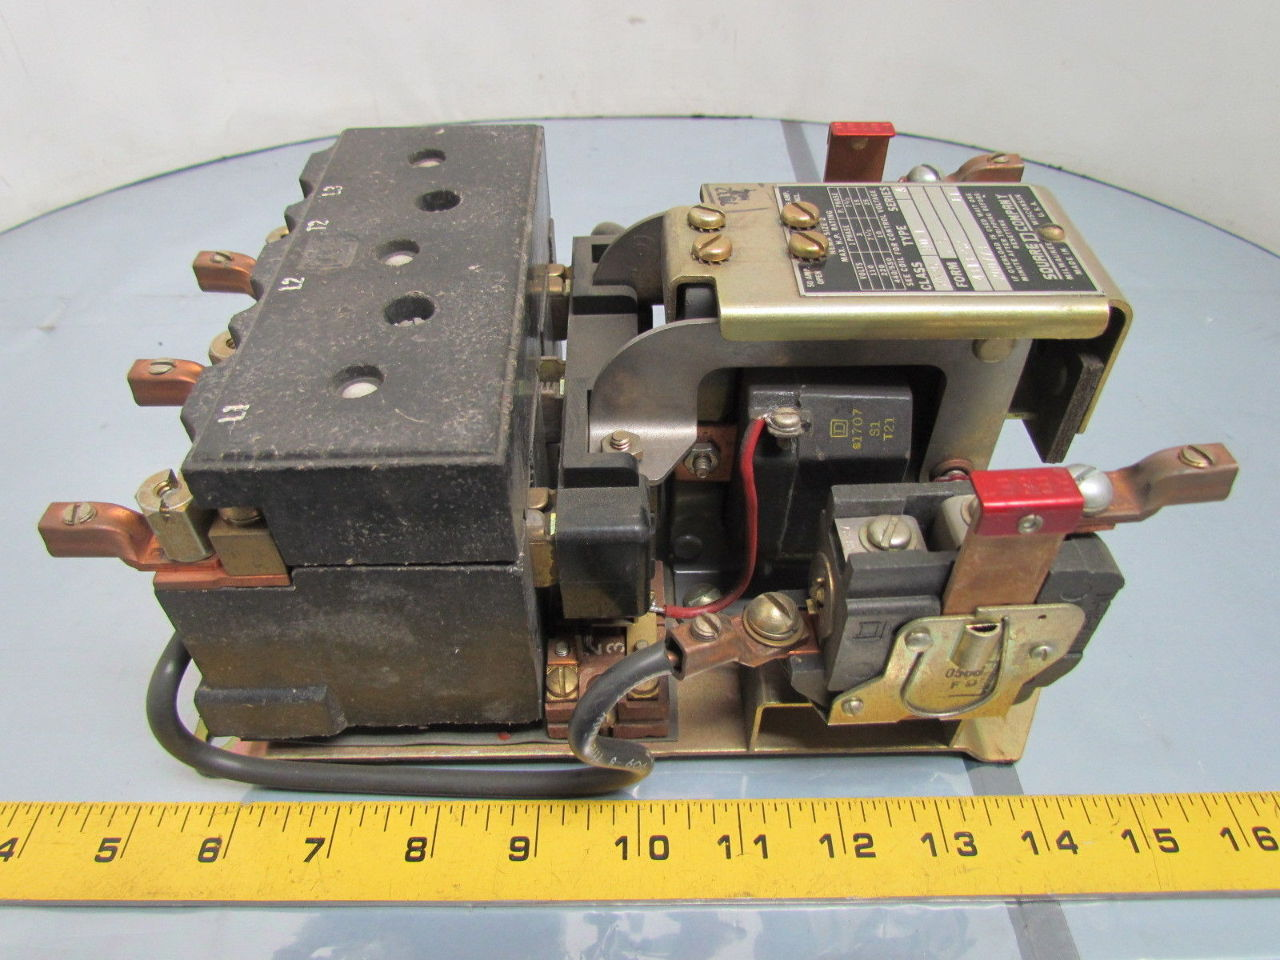 Square d 8536 d0 1 series a motor starter 600vac size 2 for Square d motor starter sizing chart